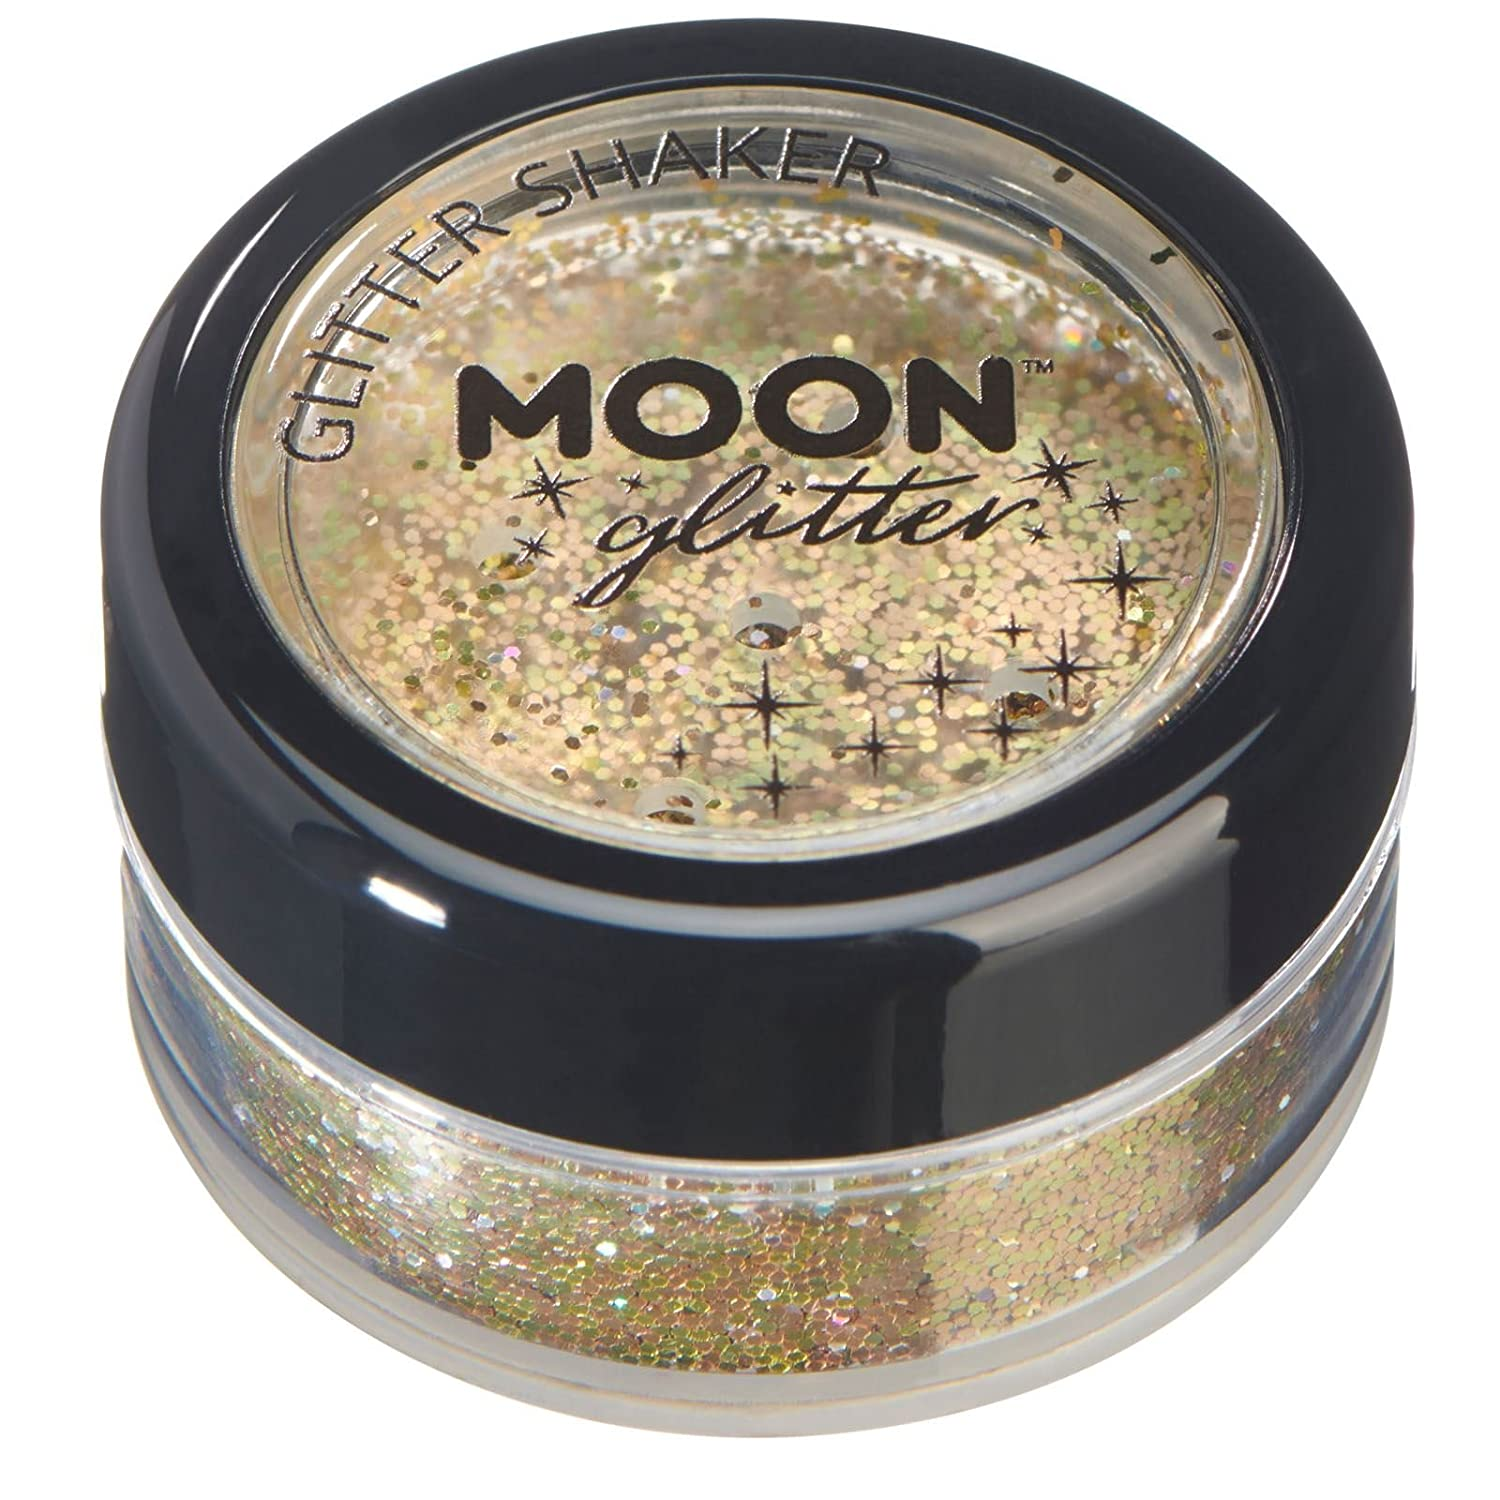 Holographic Glitter Shakers by Moon Glitter – 100% Cosmetic Glitter for Face, Body, Nails, Hair and Lips - 0.17oz - Green